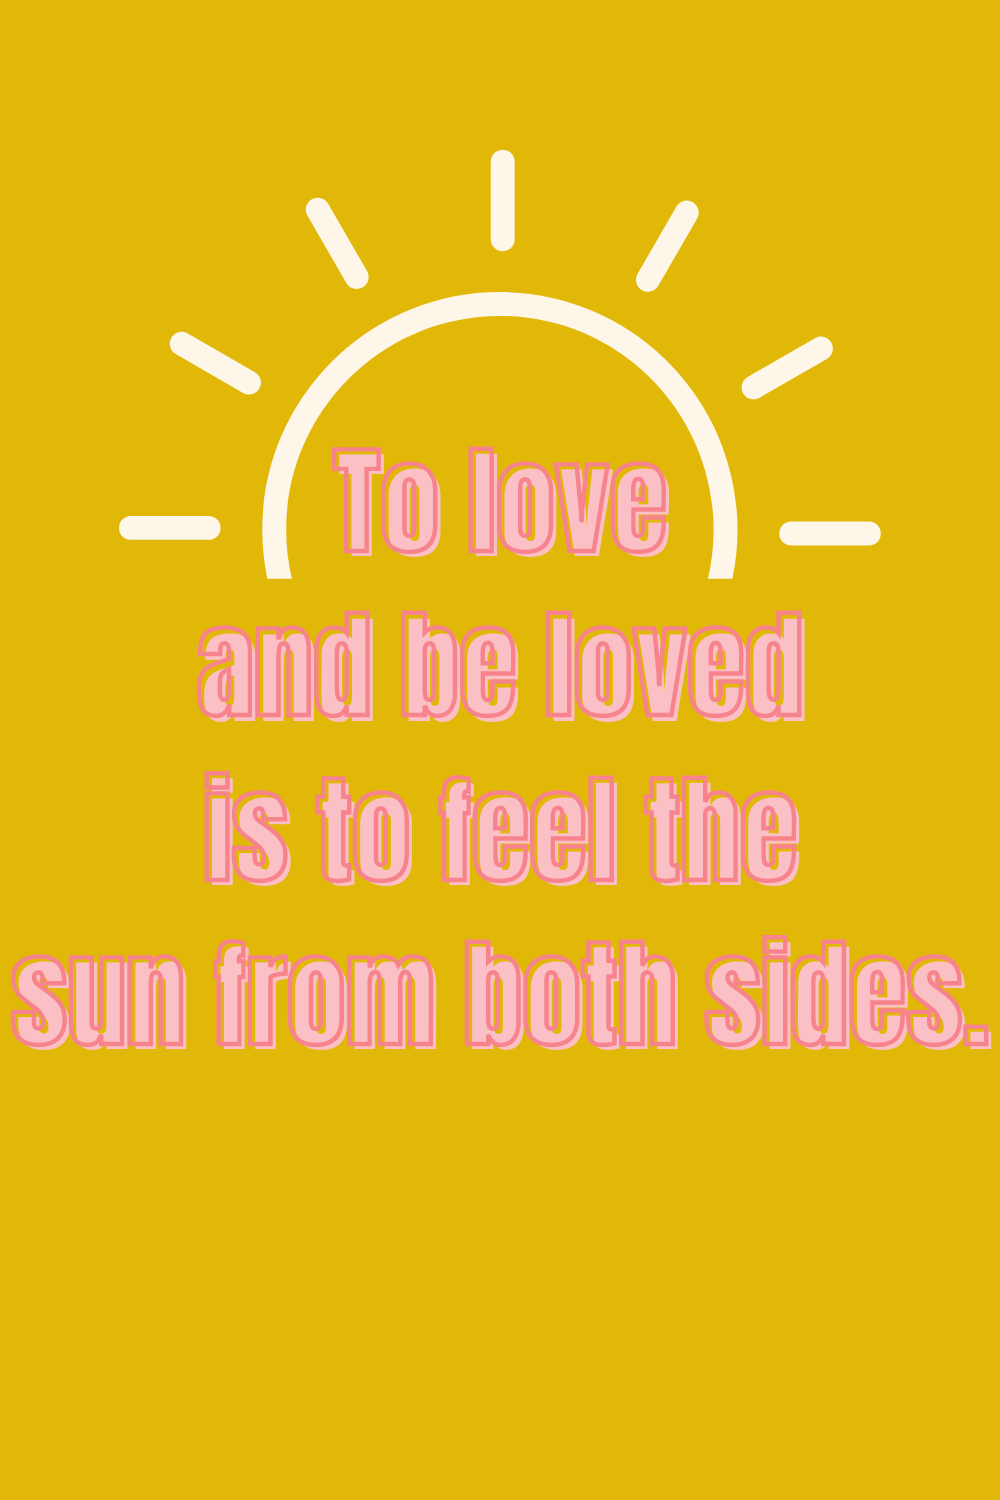 Irish Love Quotes About The Sun